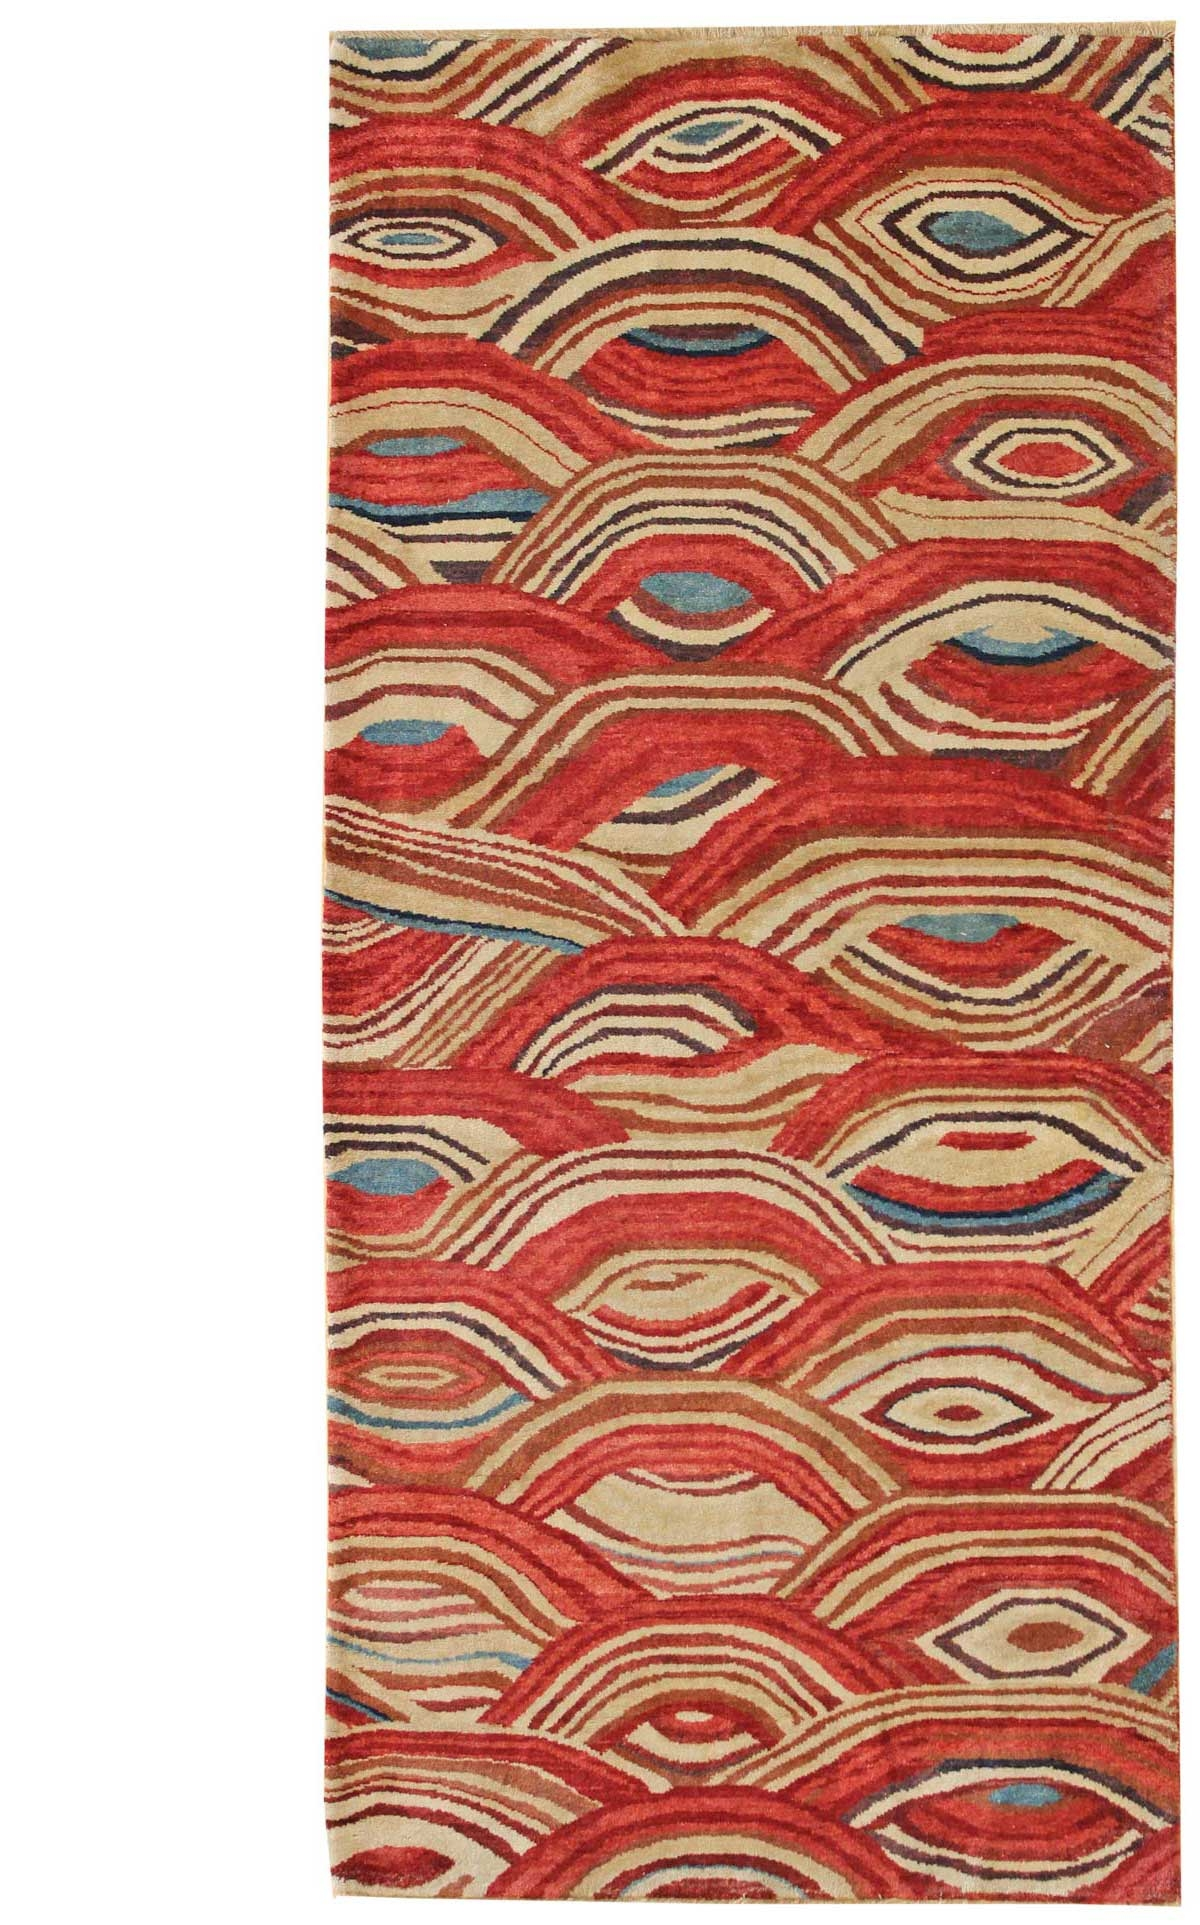 Rug Modern Runner Rugs Wuqiangco Regarding Contemporary Runner Rugs For Hallway (#15 of 20)